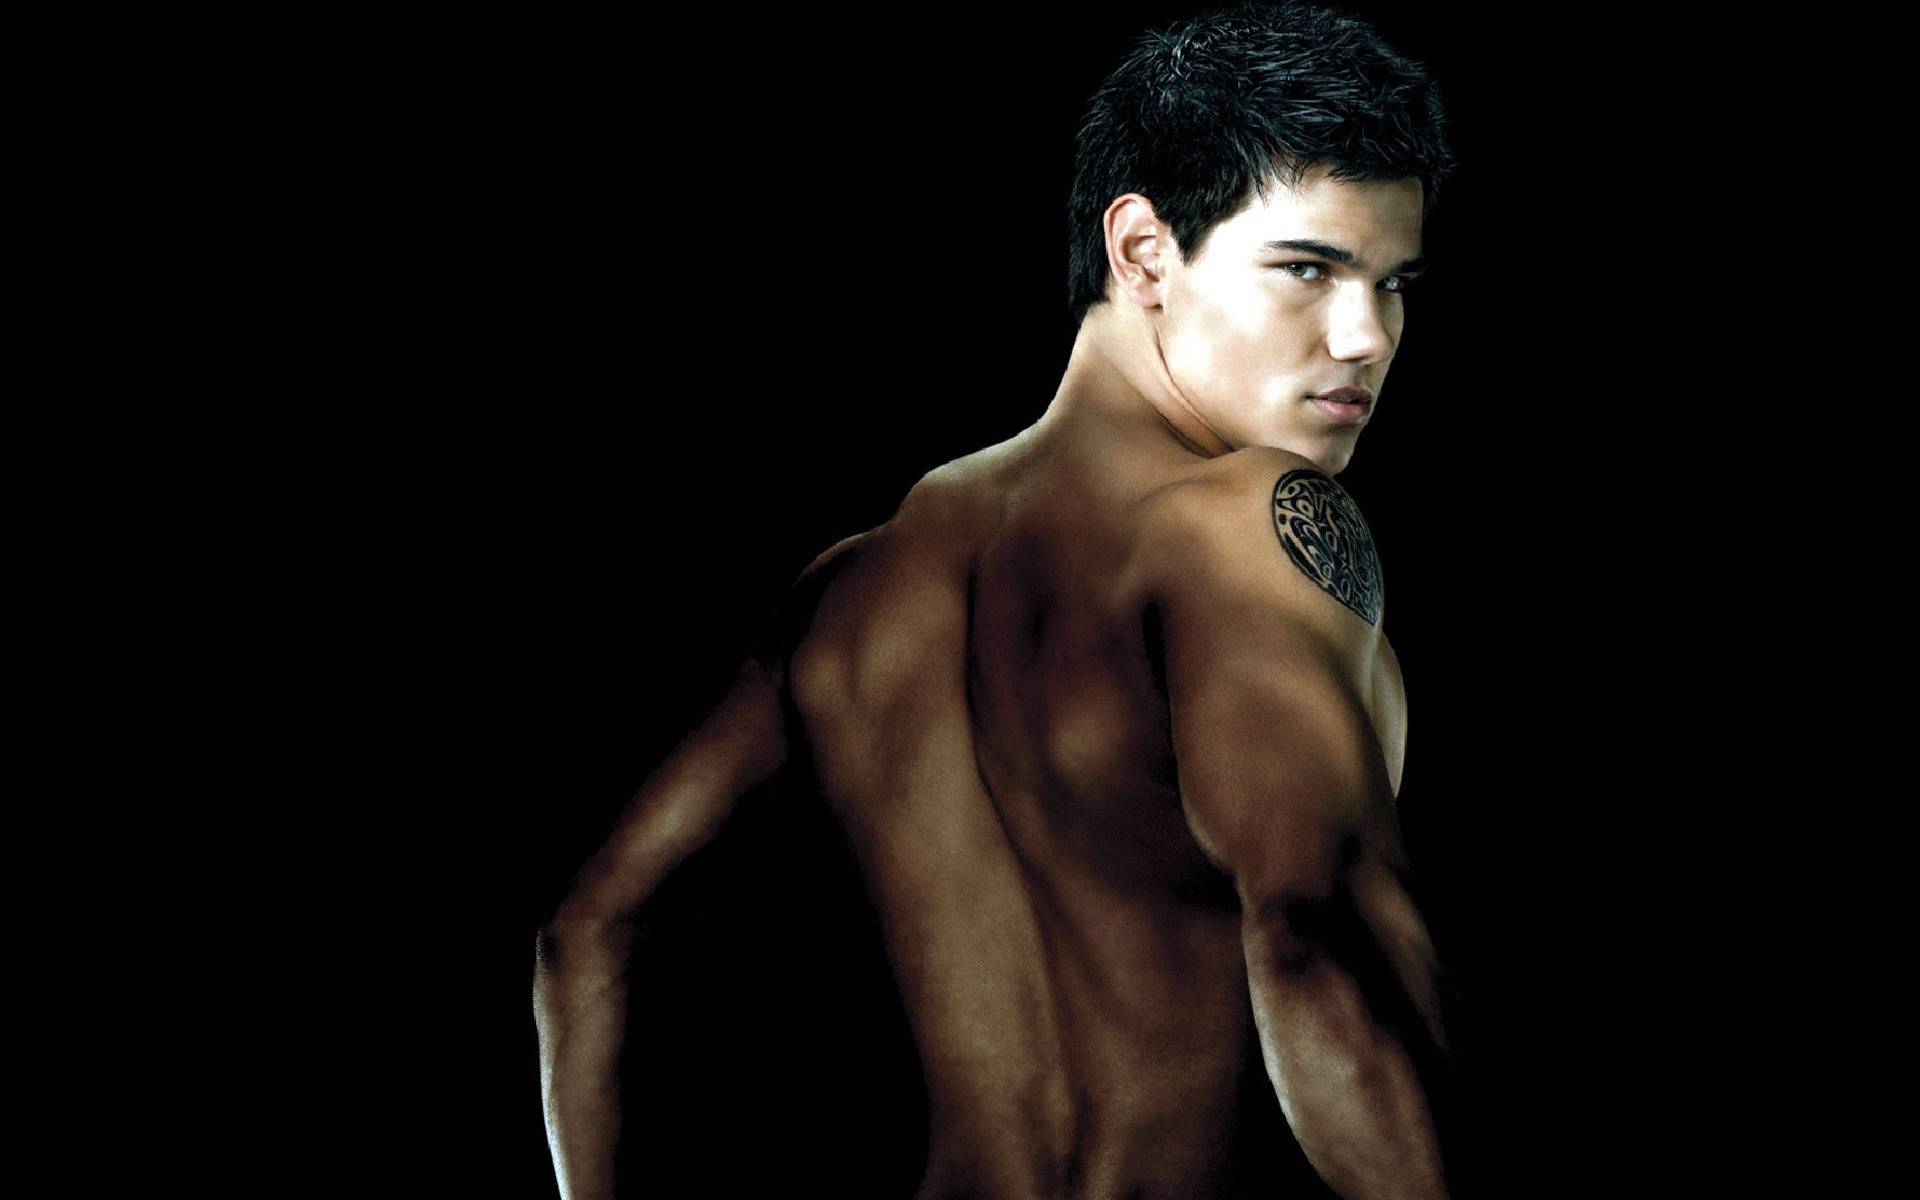 Free nude pic taylor lautner, mans dick pictures